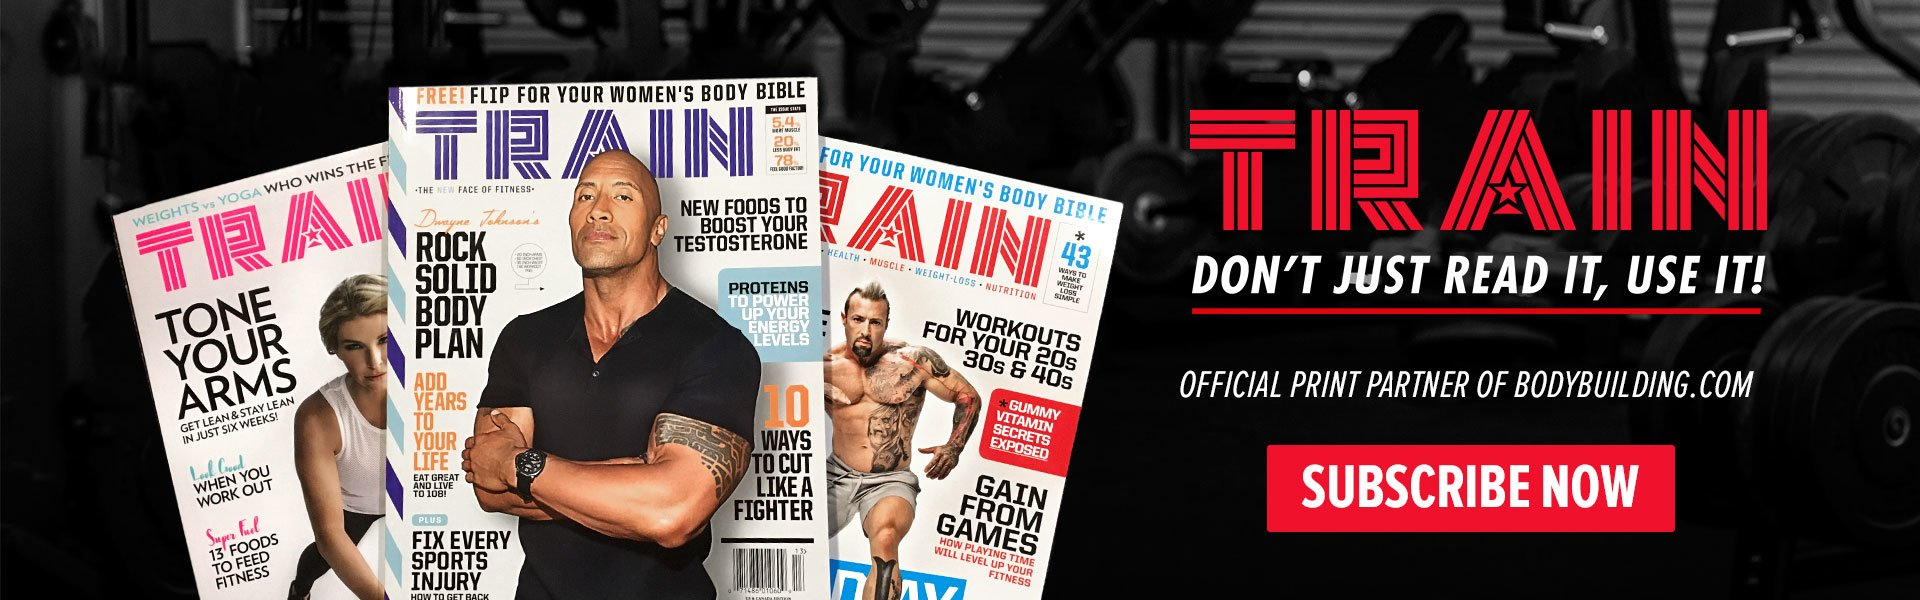 TRAIN - Don't Just Read It, Use It! Official Print Partner of Bodybuilding.com - Subscribe Now